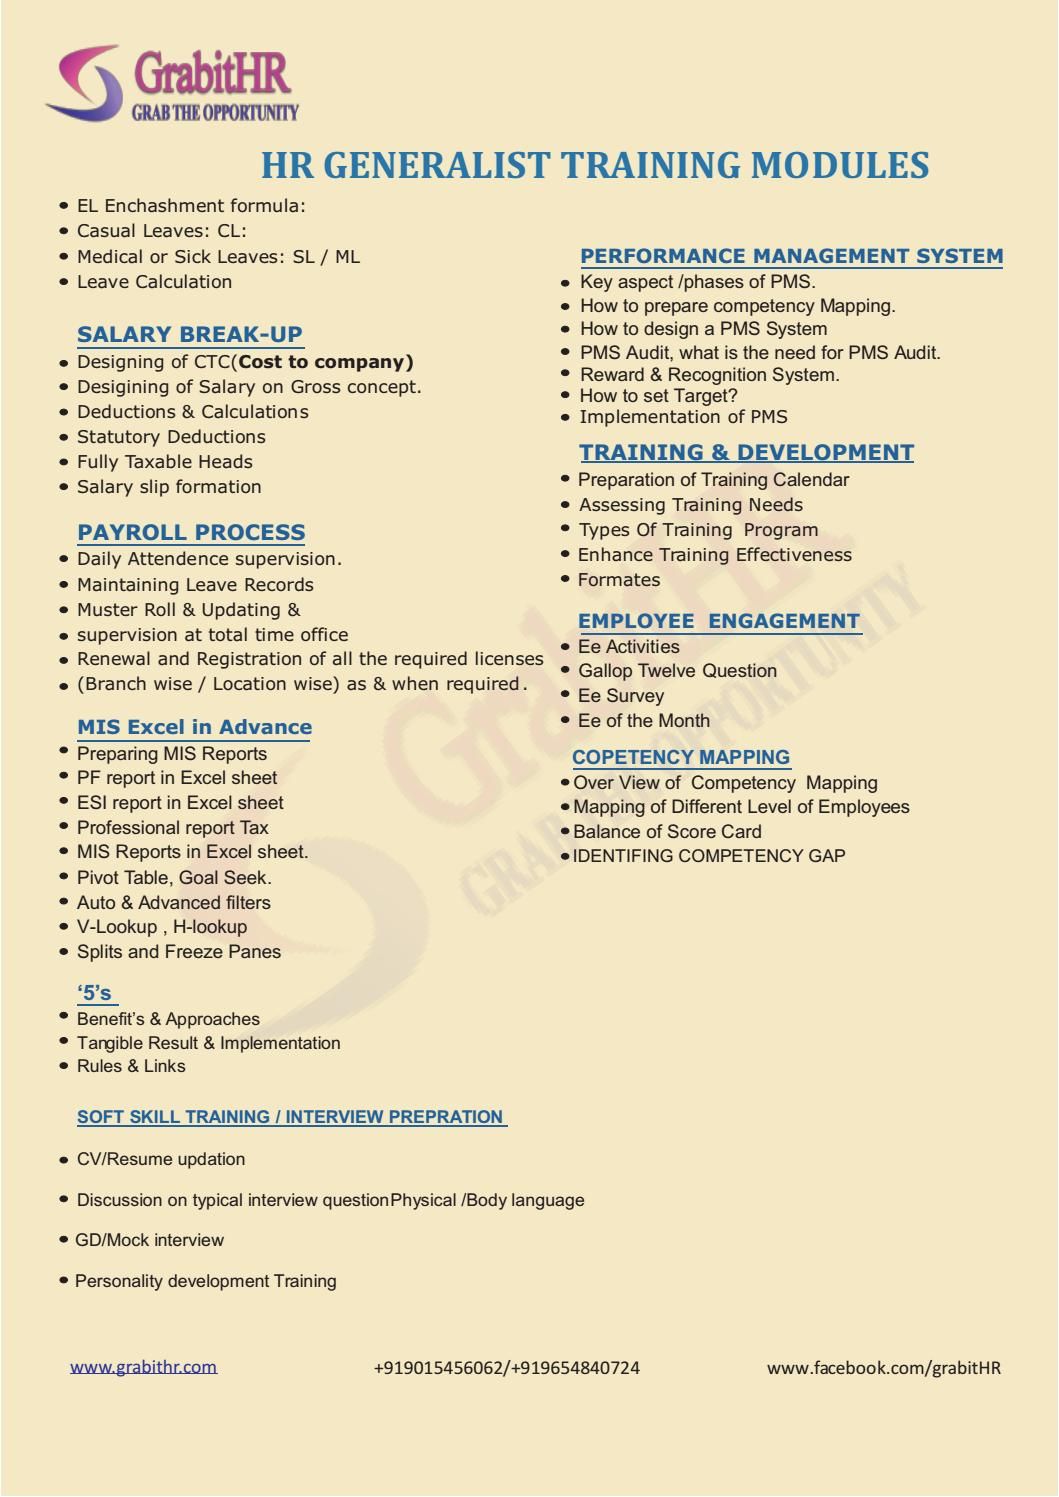 HR Generalist Practical Training with 100% placement by